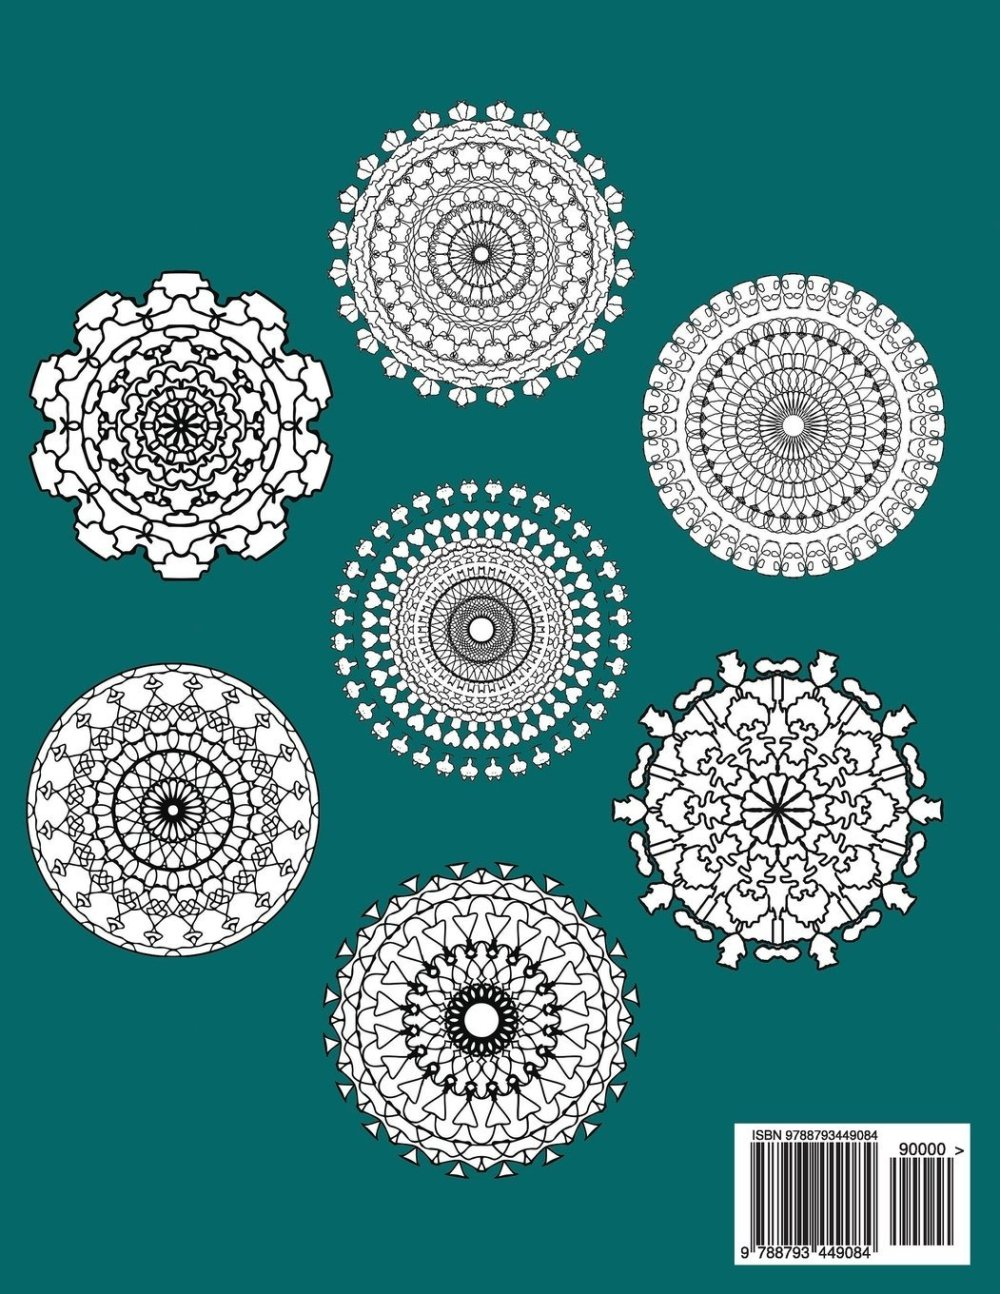 50 Mandala Fun Designs waiting for you splash with color. Mandala Fun Adult Coloring Book Volume 1